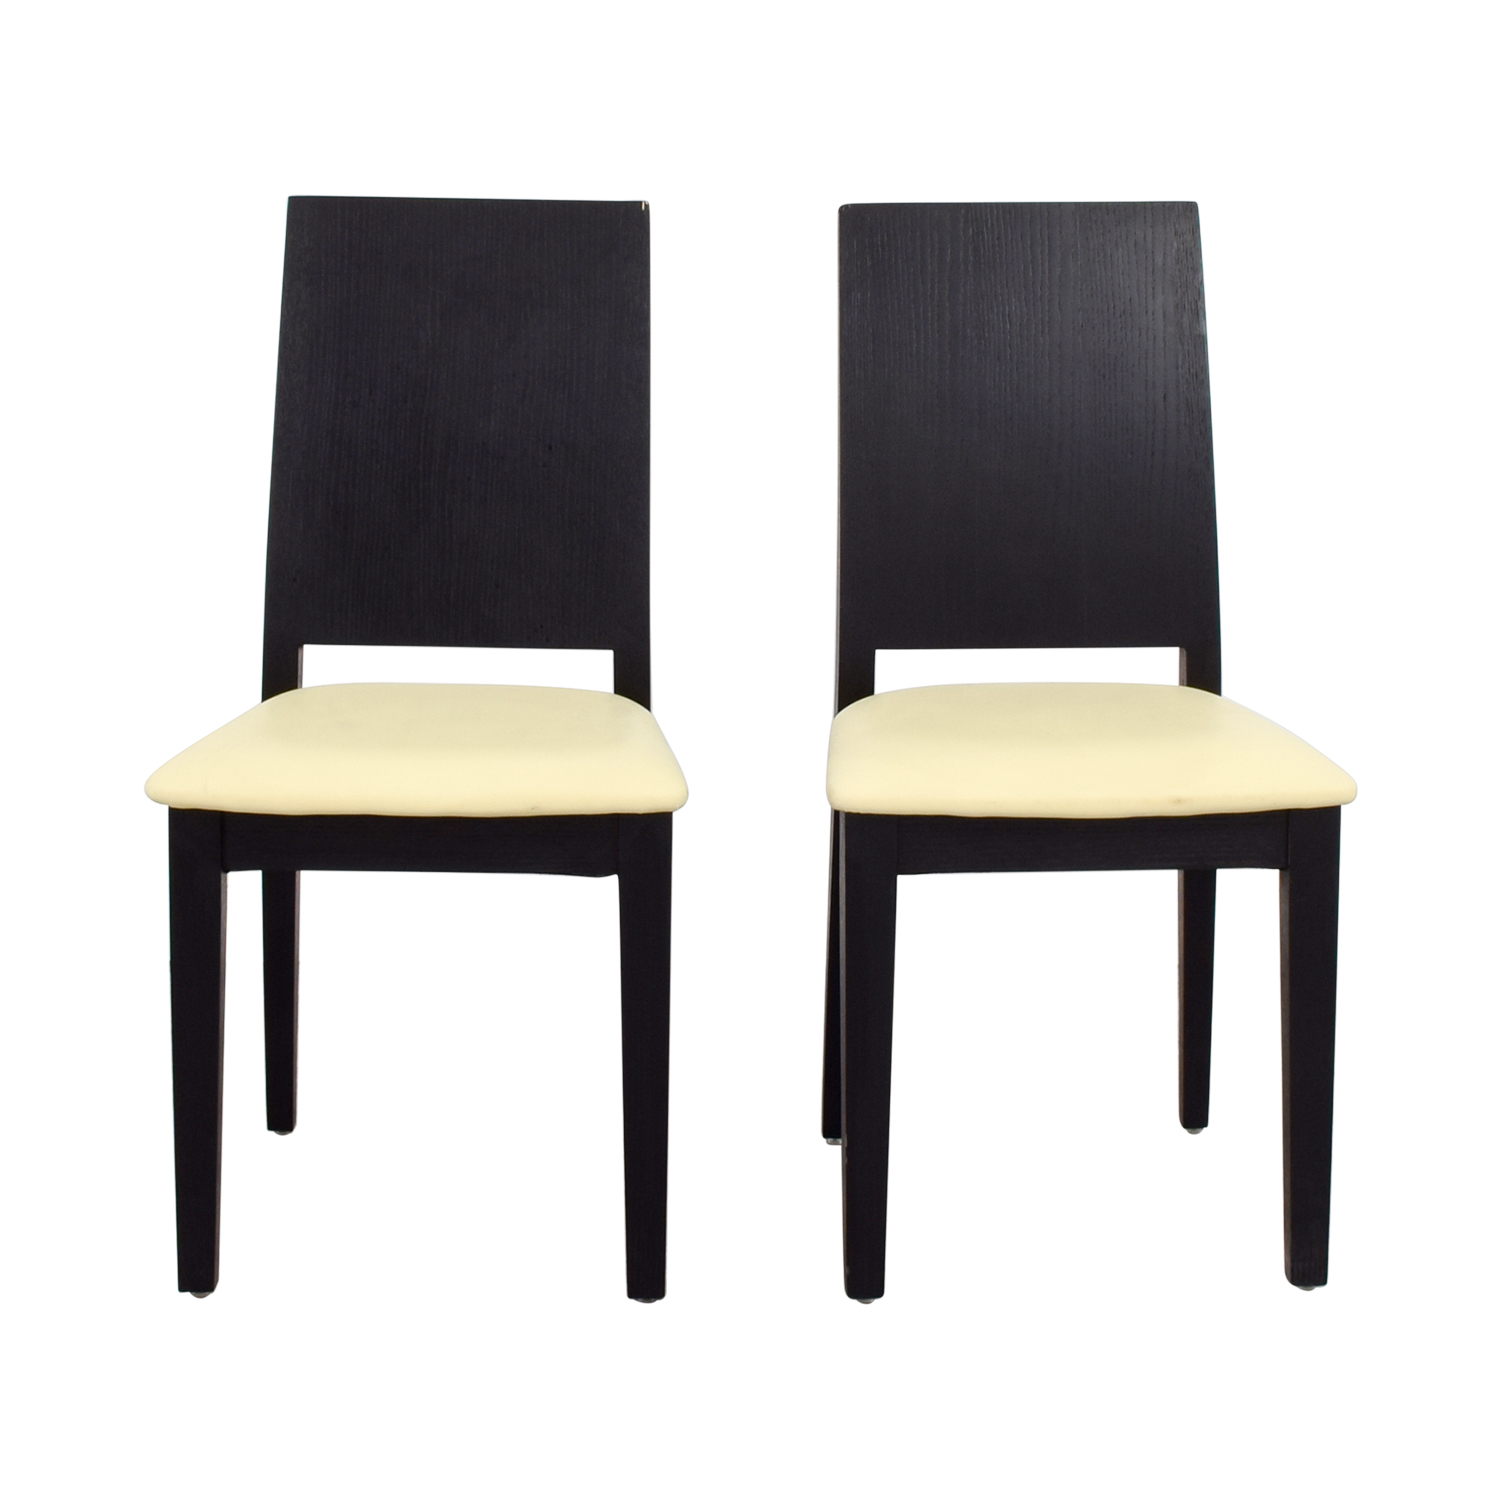 Black Frame with White Seat Dining Chairs nyc